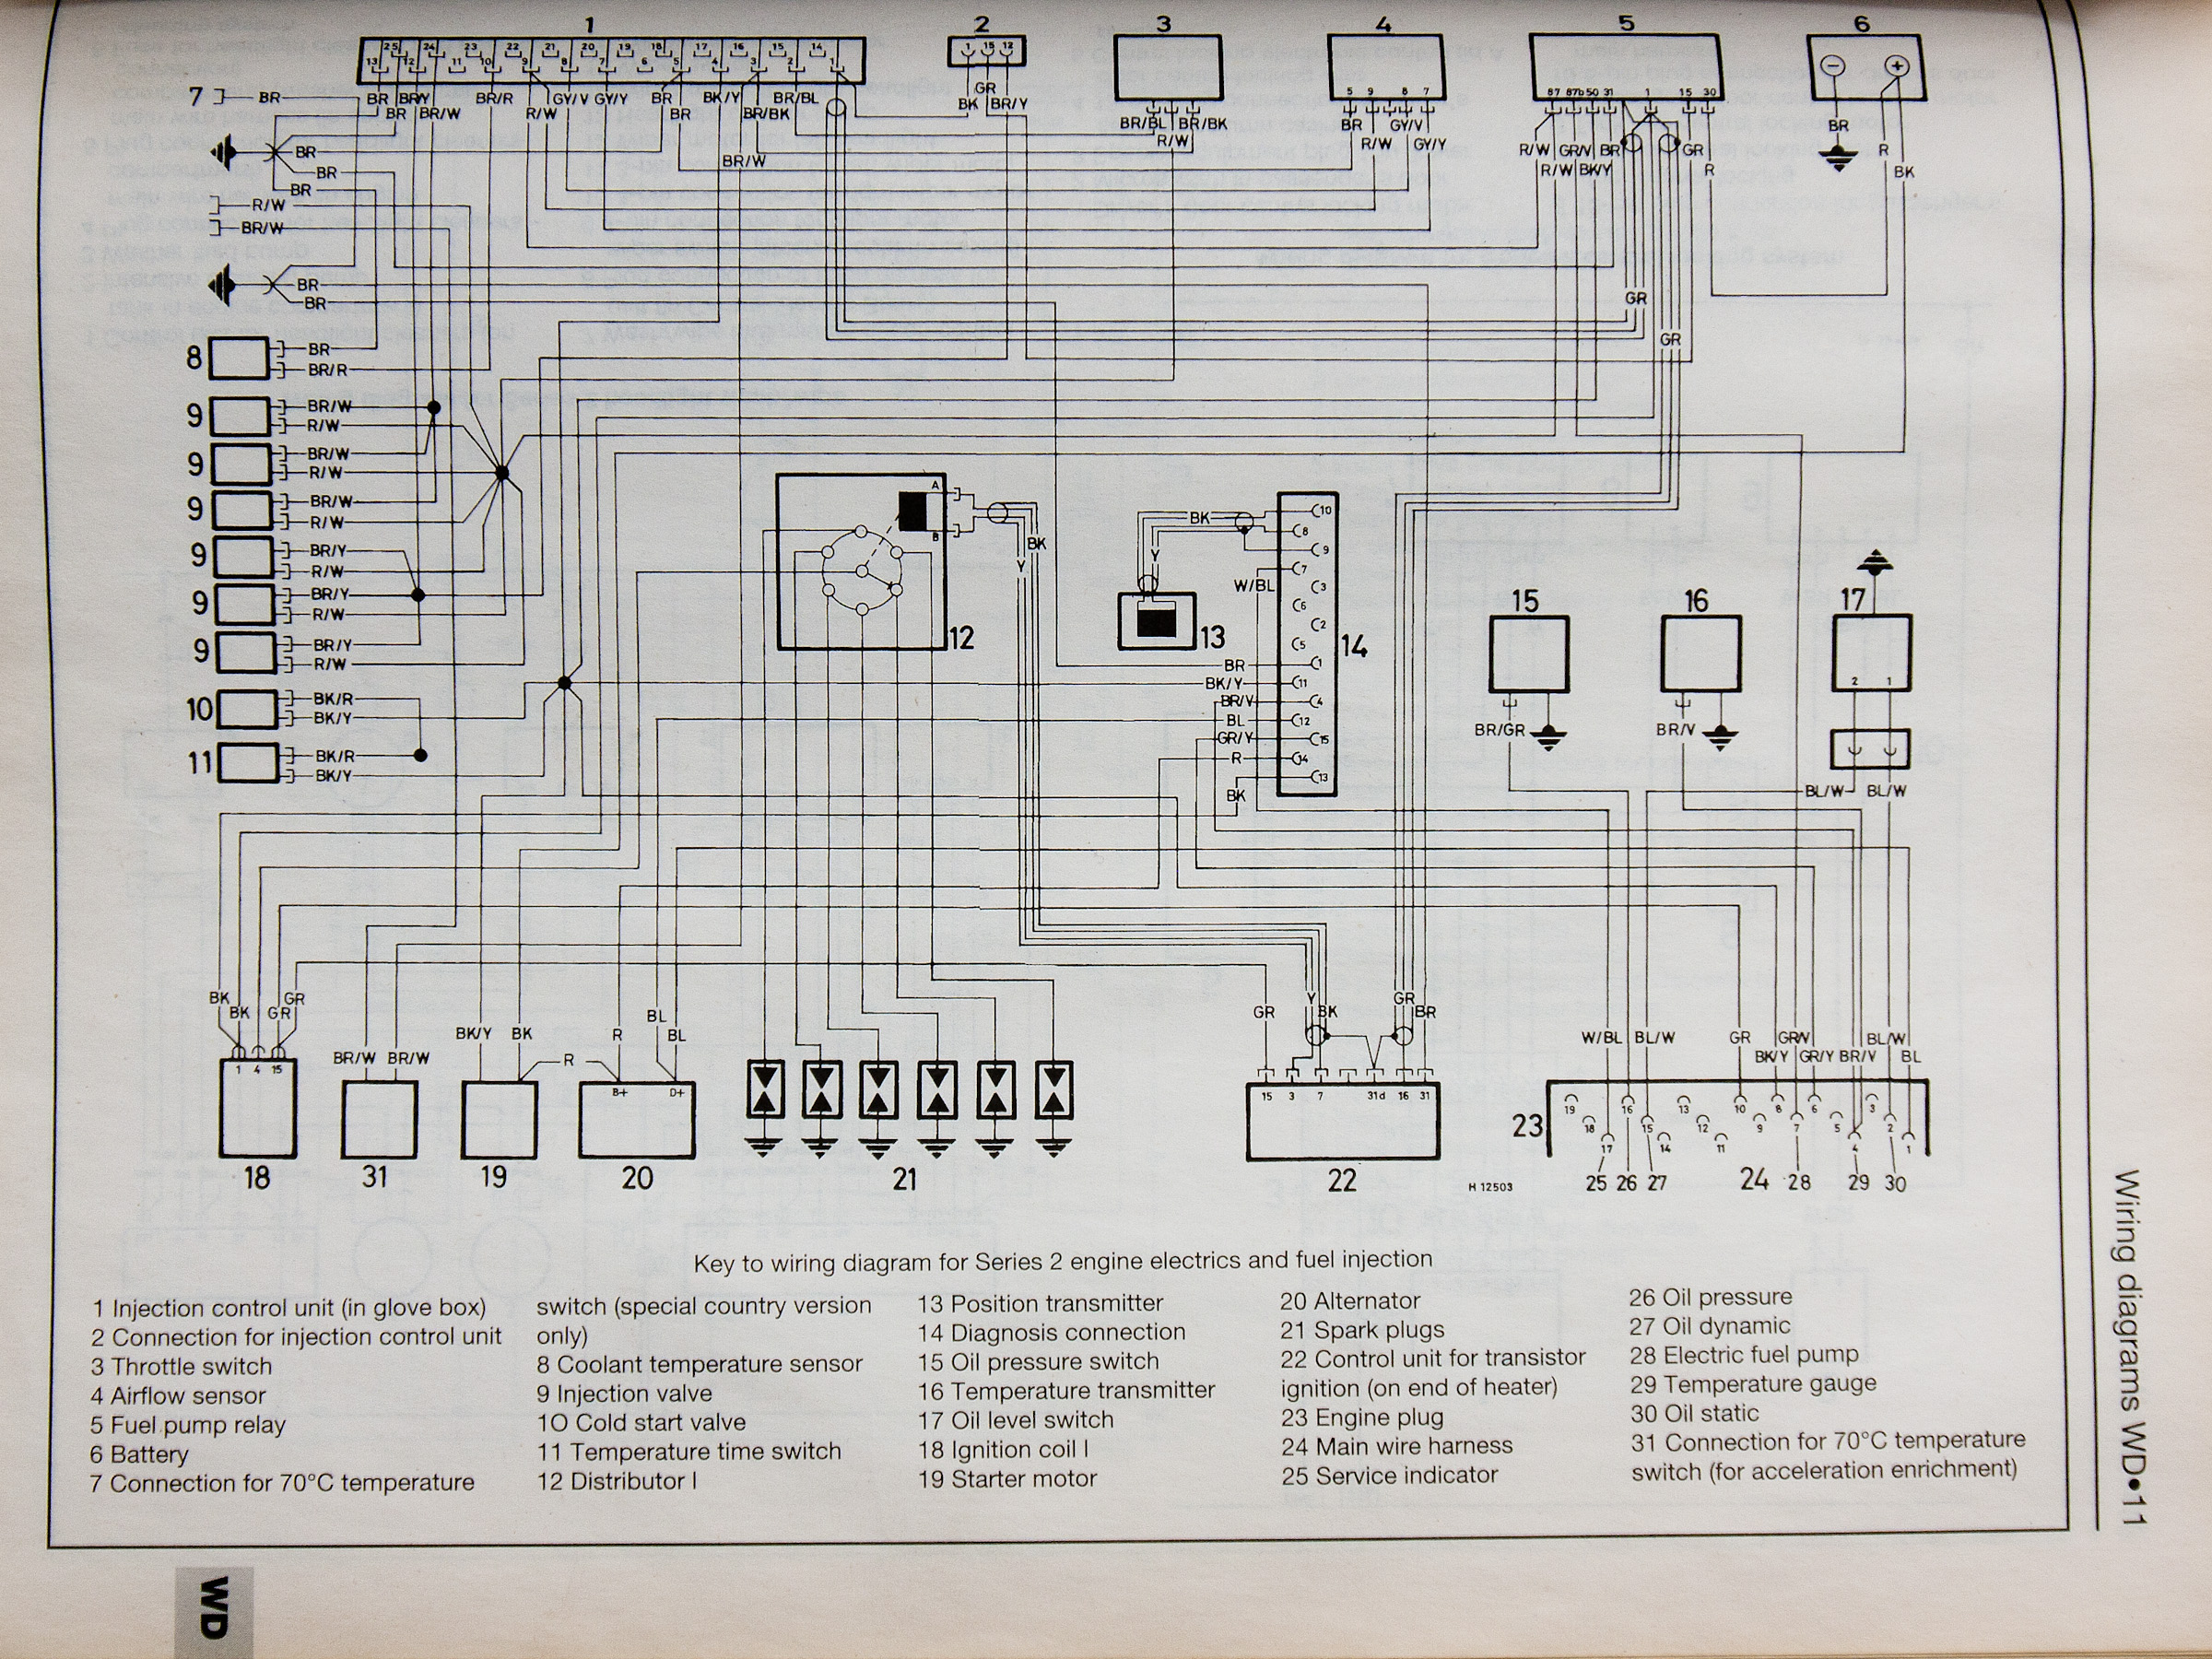 Bmw E21 Wiring Diagram Detailed Diagrams 1983 Mercedes E30 Info 1977 Mgb A Typical L Jetronic Taken